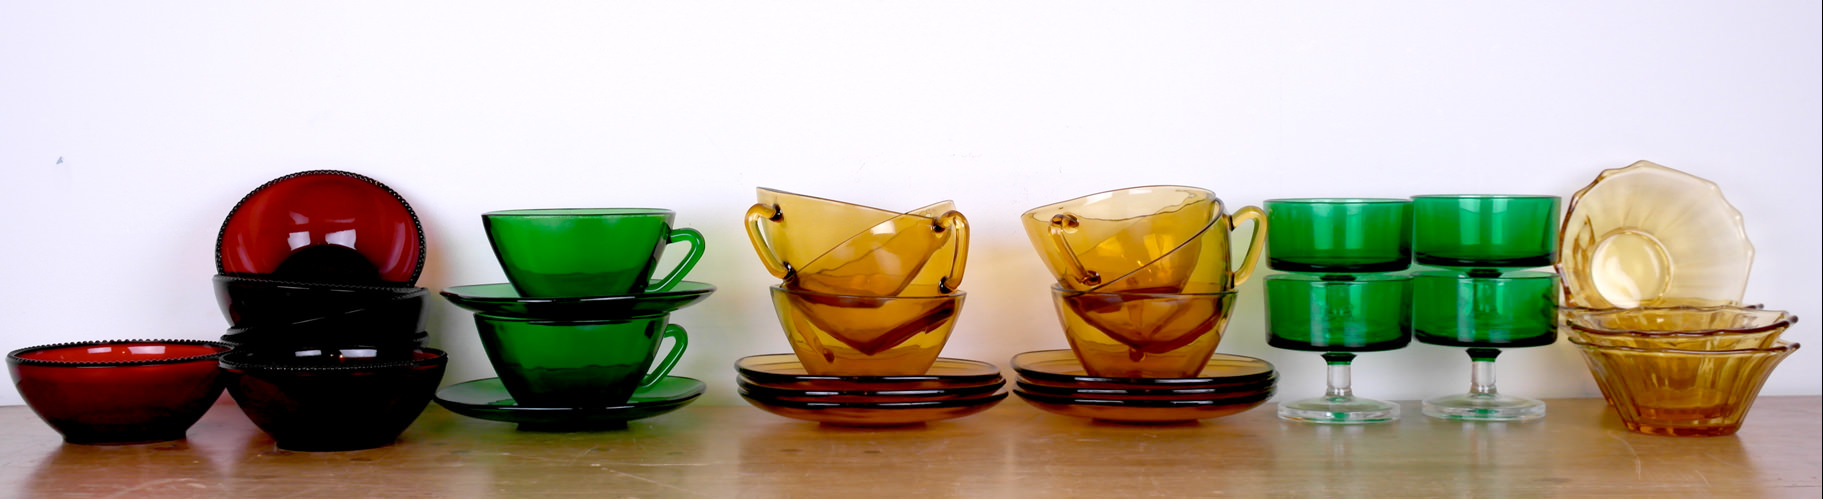 Vintage Murano glass bowls & cups & saucers